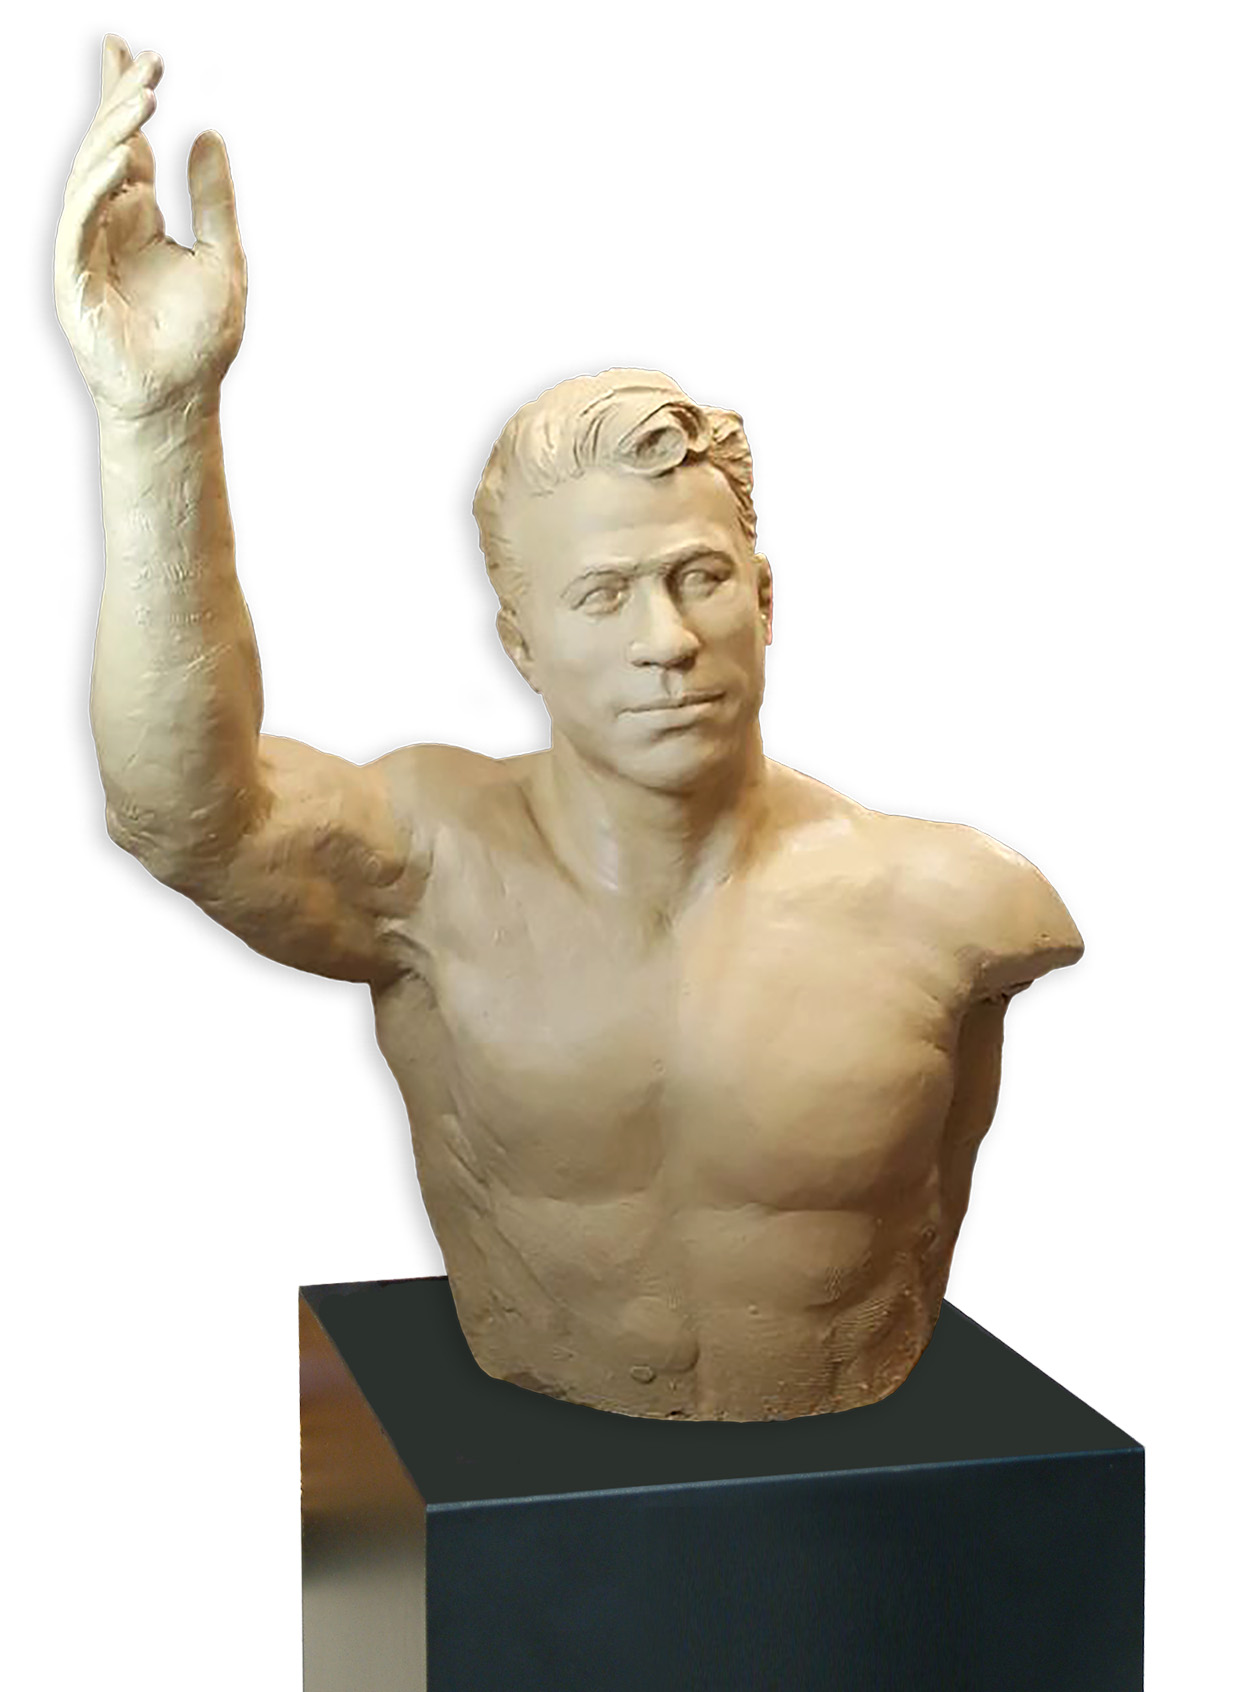 Iranian Wrestler Sculpture